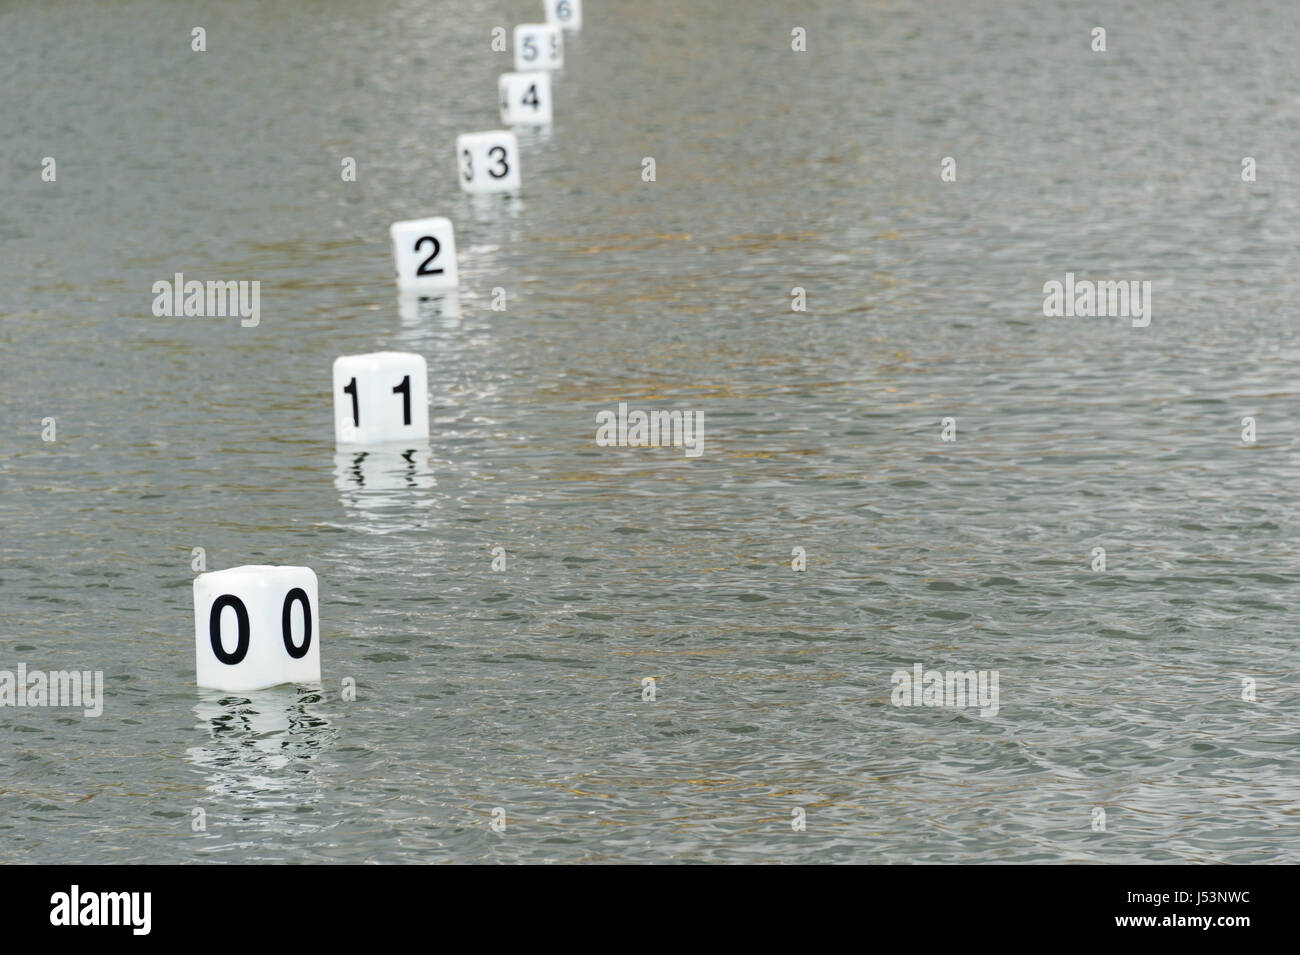 Regatta white buoys showing numbers starting at 0 - Stock Image